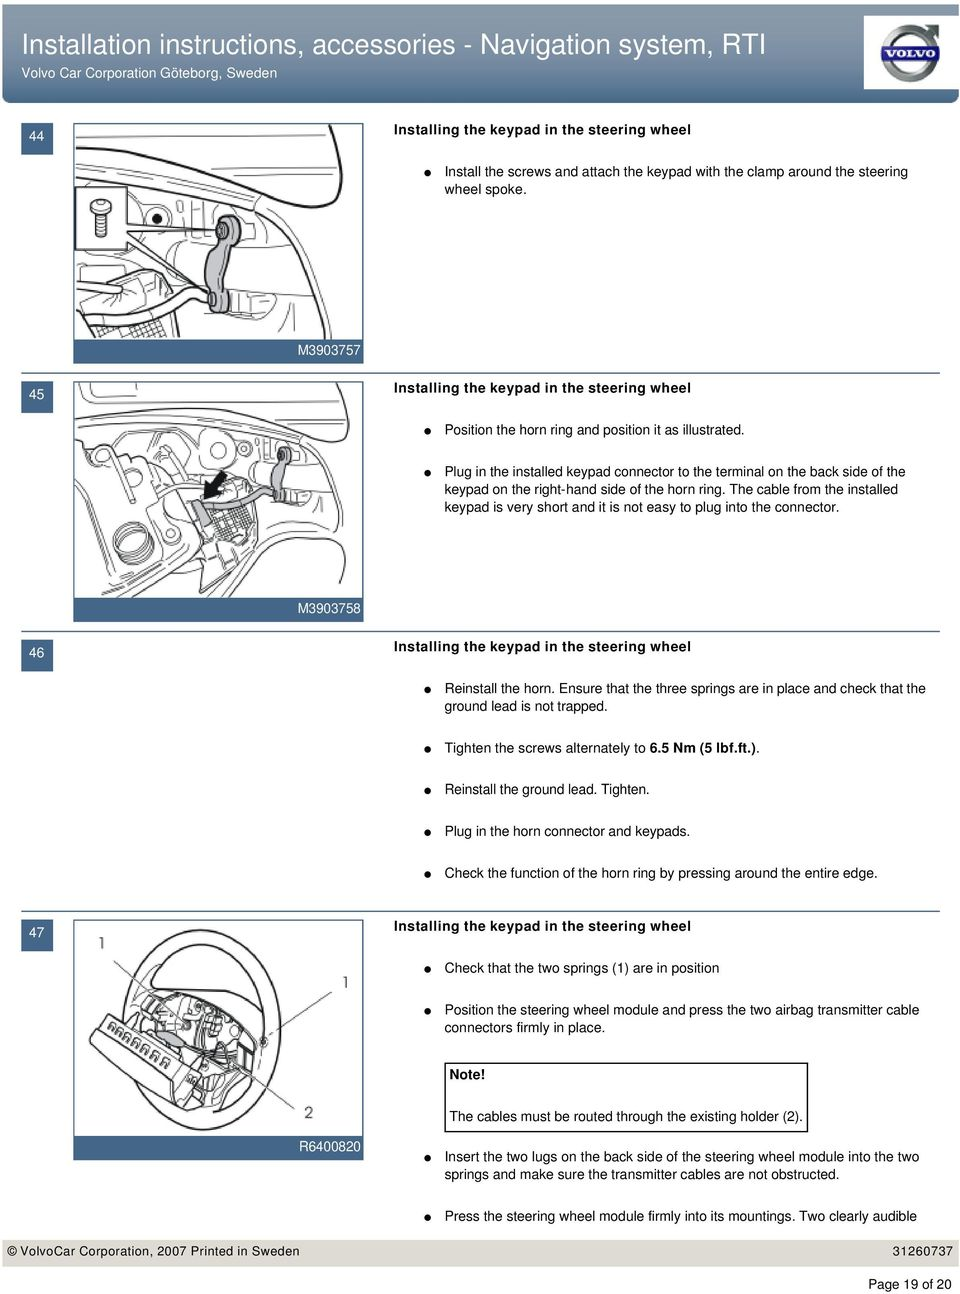 Installation instructions, accessories - Navigation system